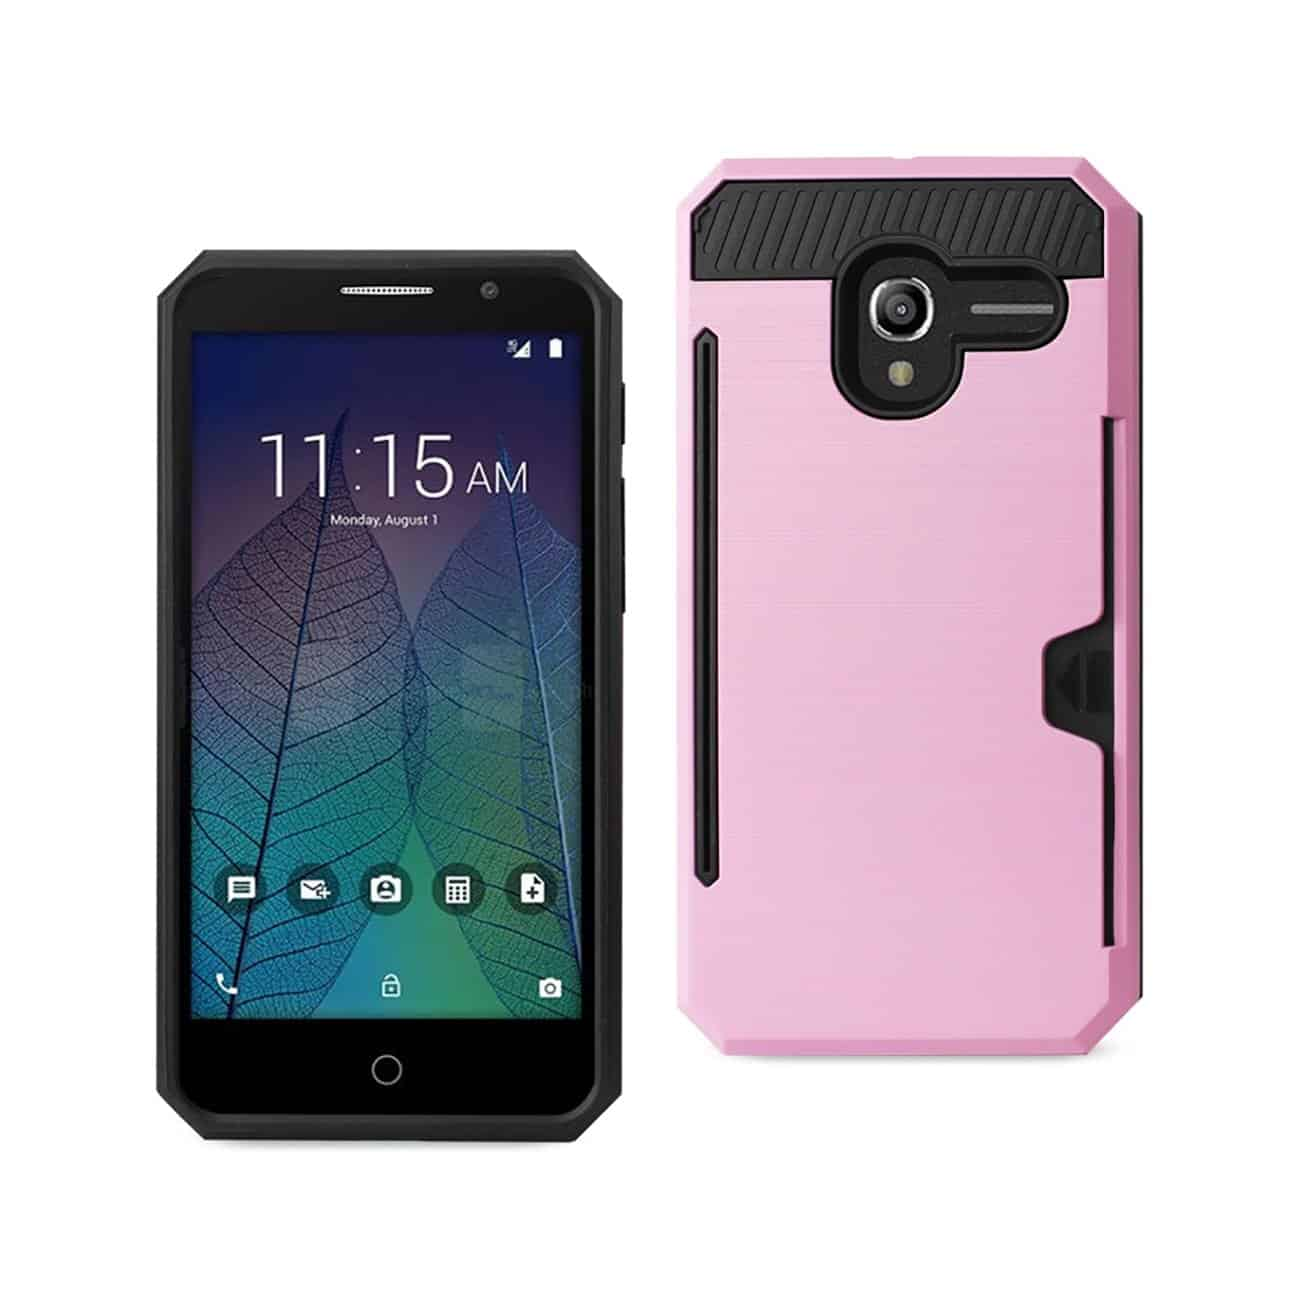 ALCATEL TRU SLIM ARMOR HYBRID CASE WITH CARD HOLDER IN PINK